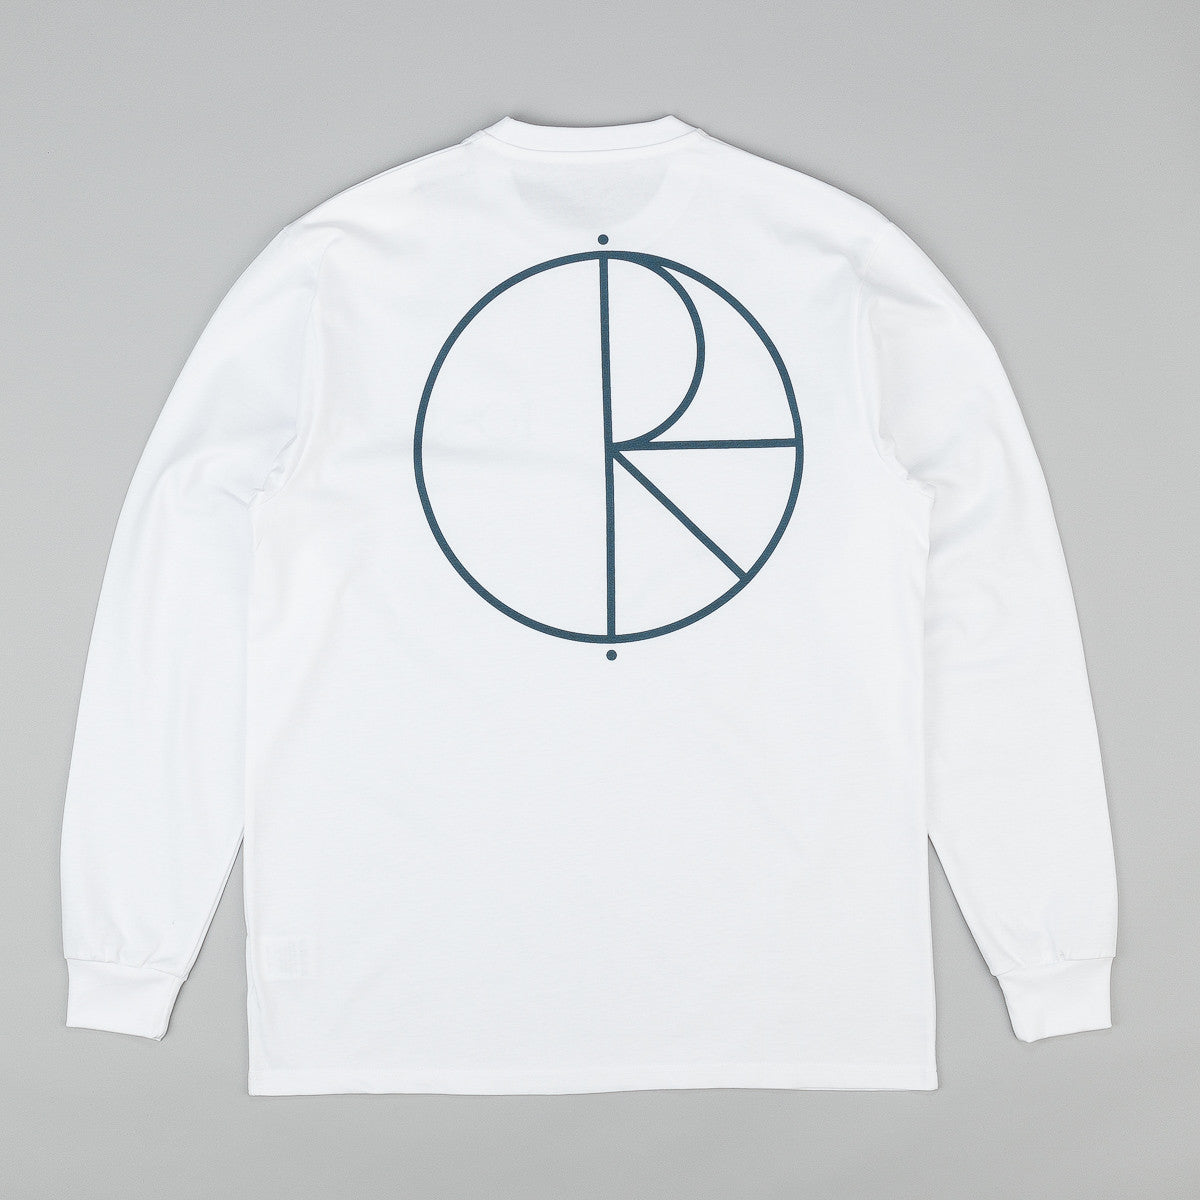 Polar Stroke Logo Long Sleeve T-Shirt - White / Pastel Blue